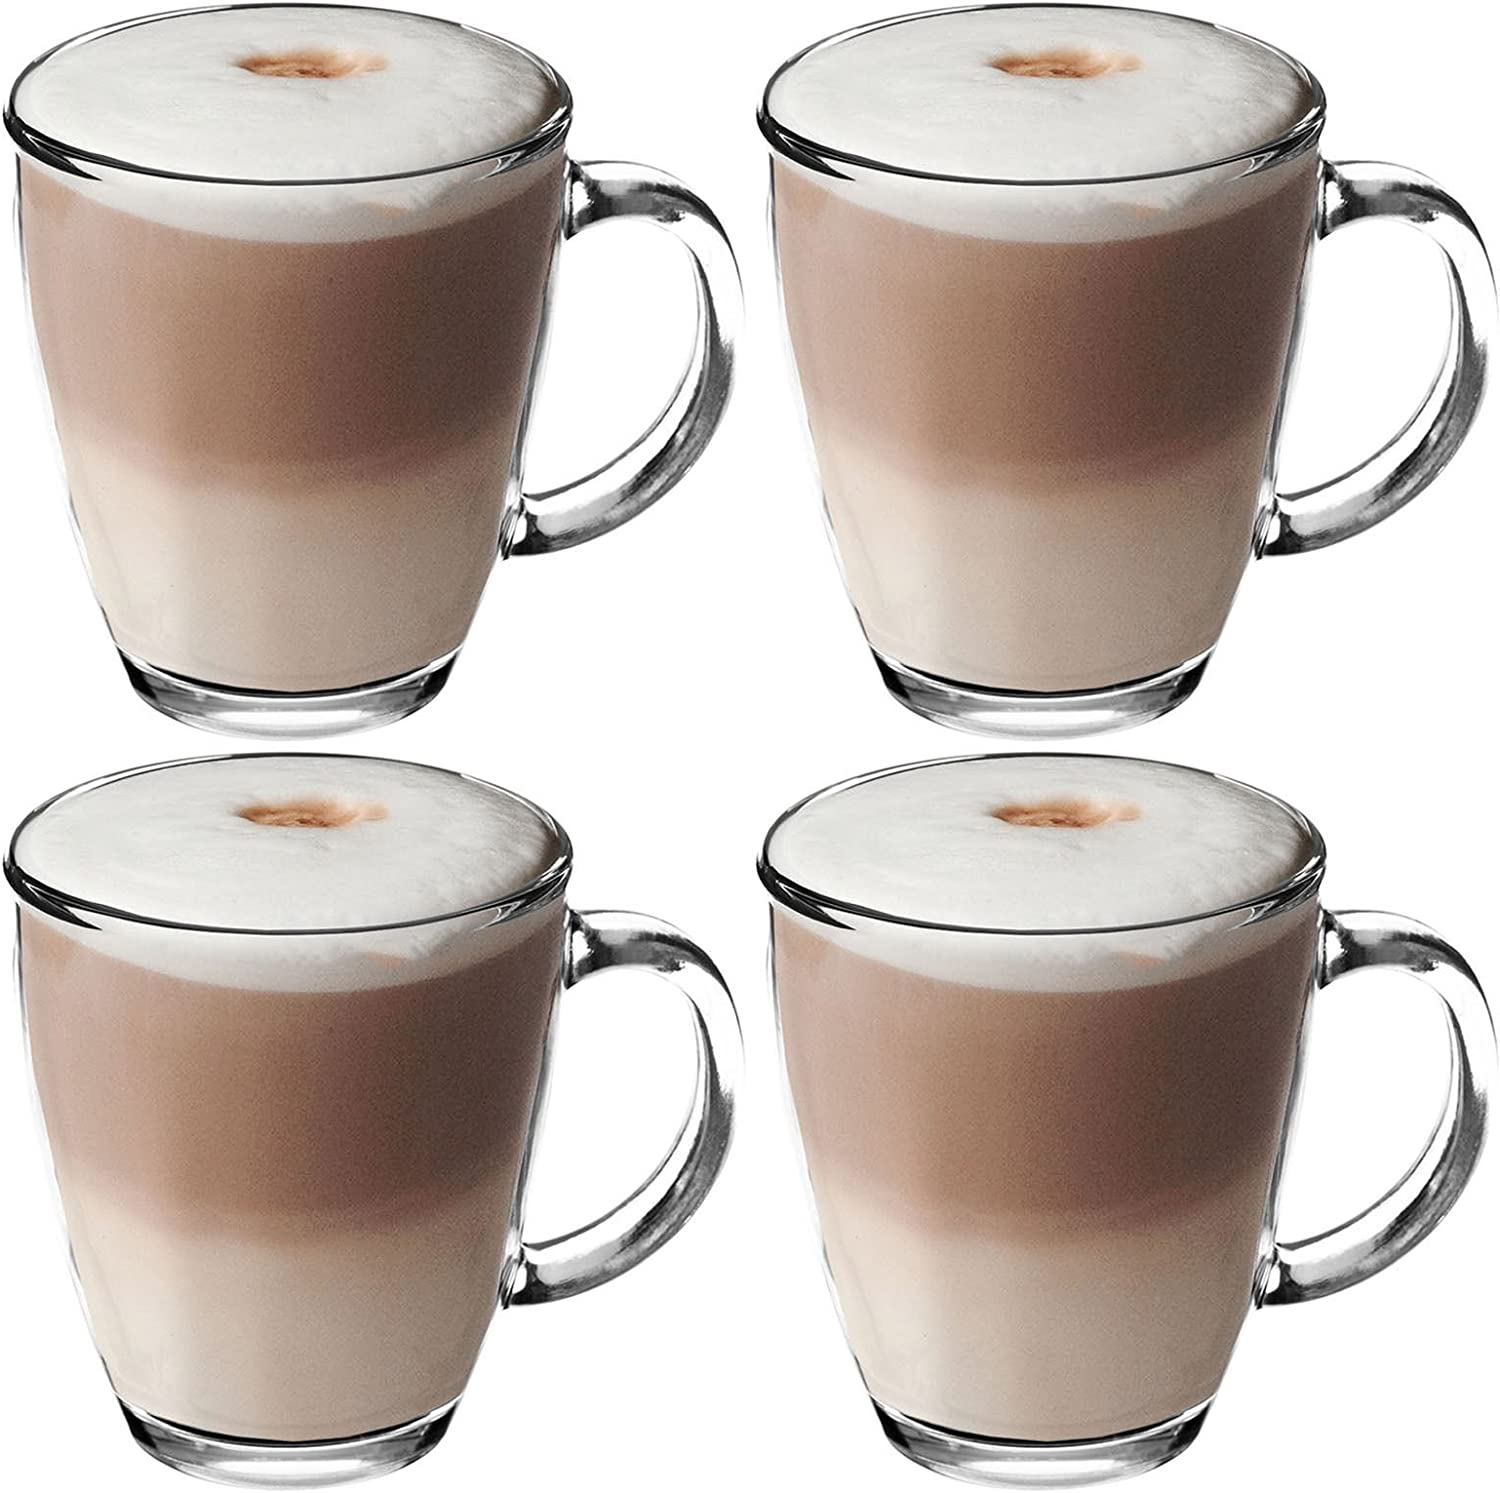 Get Goods 350ml Latte Glasses Thick Toughened Glass Mugs Coffee Tea Espresso Cappuccino Dishwasher Safe 4 Glasses Amazon Co Uk Kitchen Home